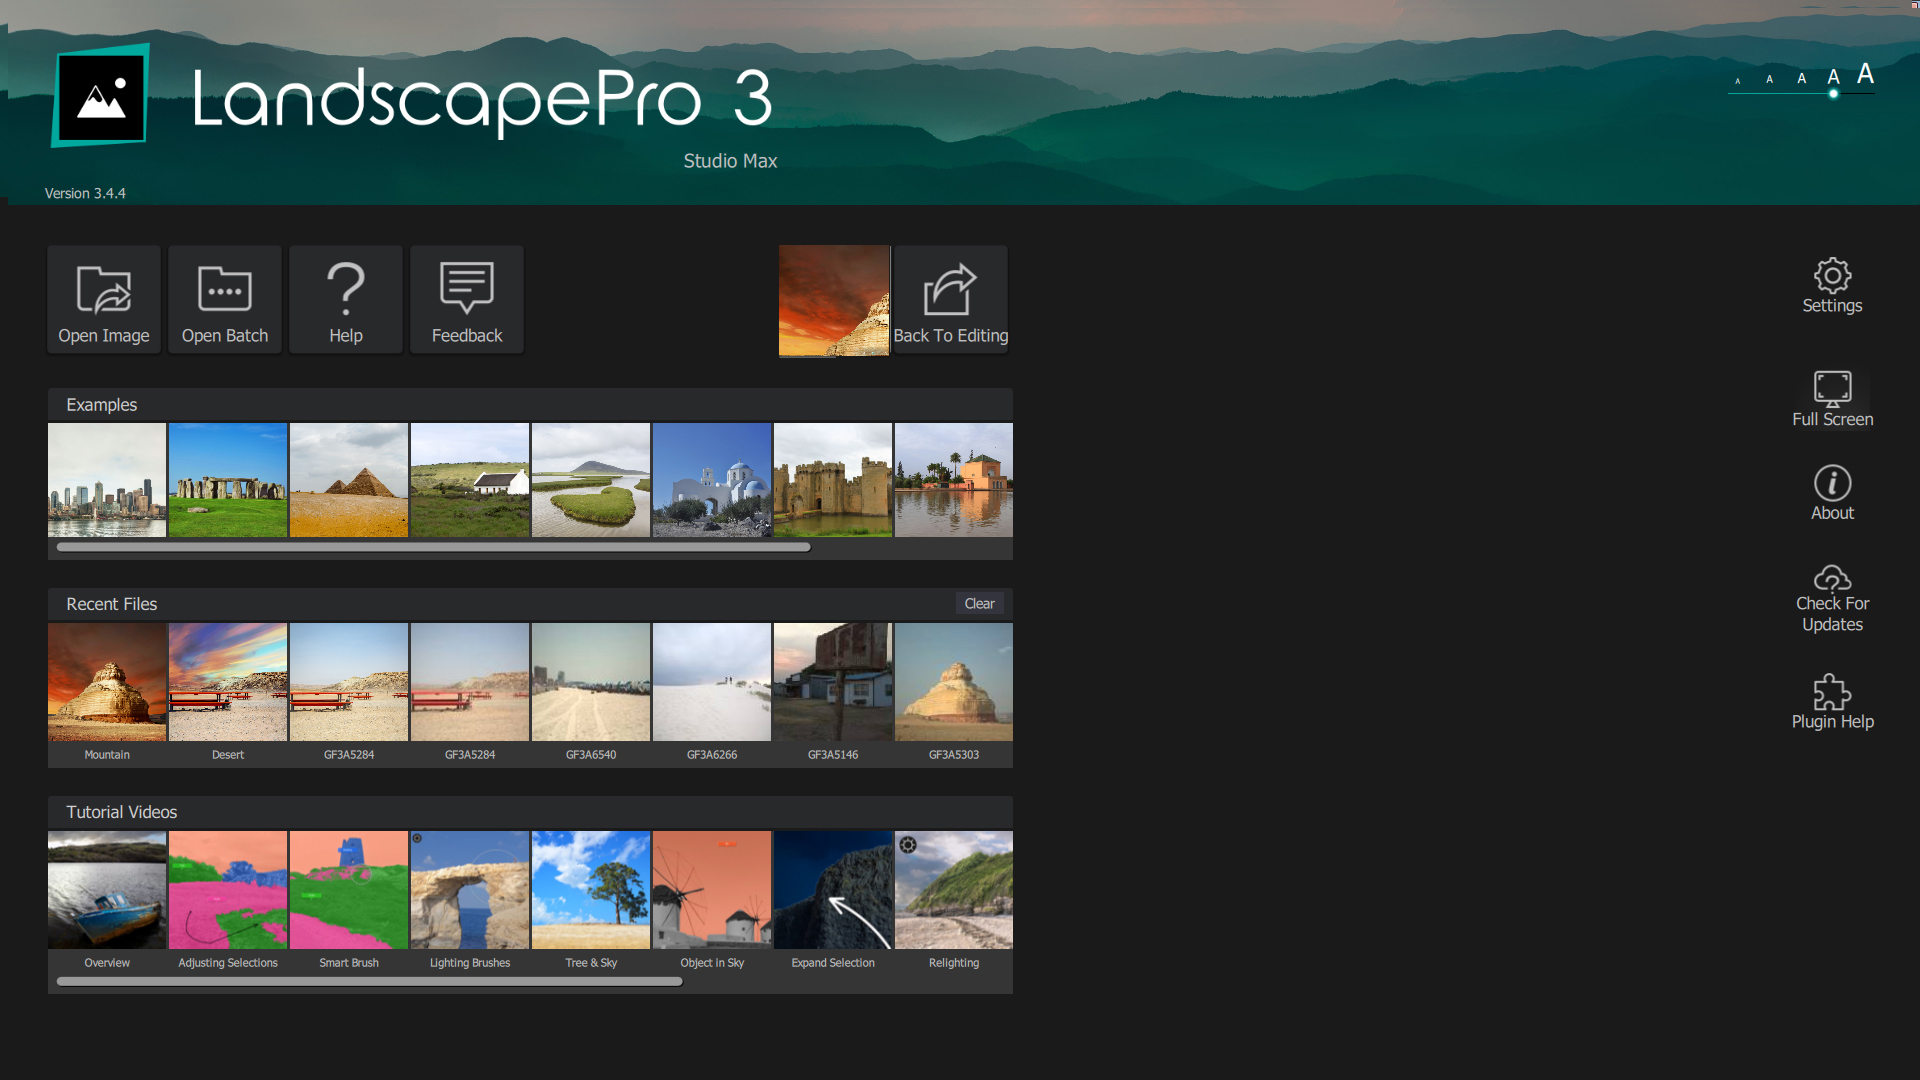 Landscape Pro Studio Max 3 photo editing software review